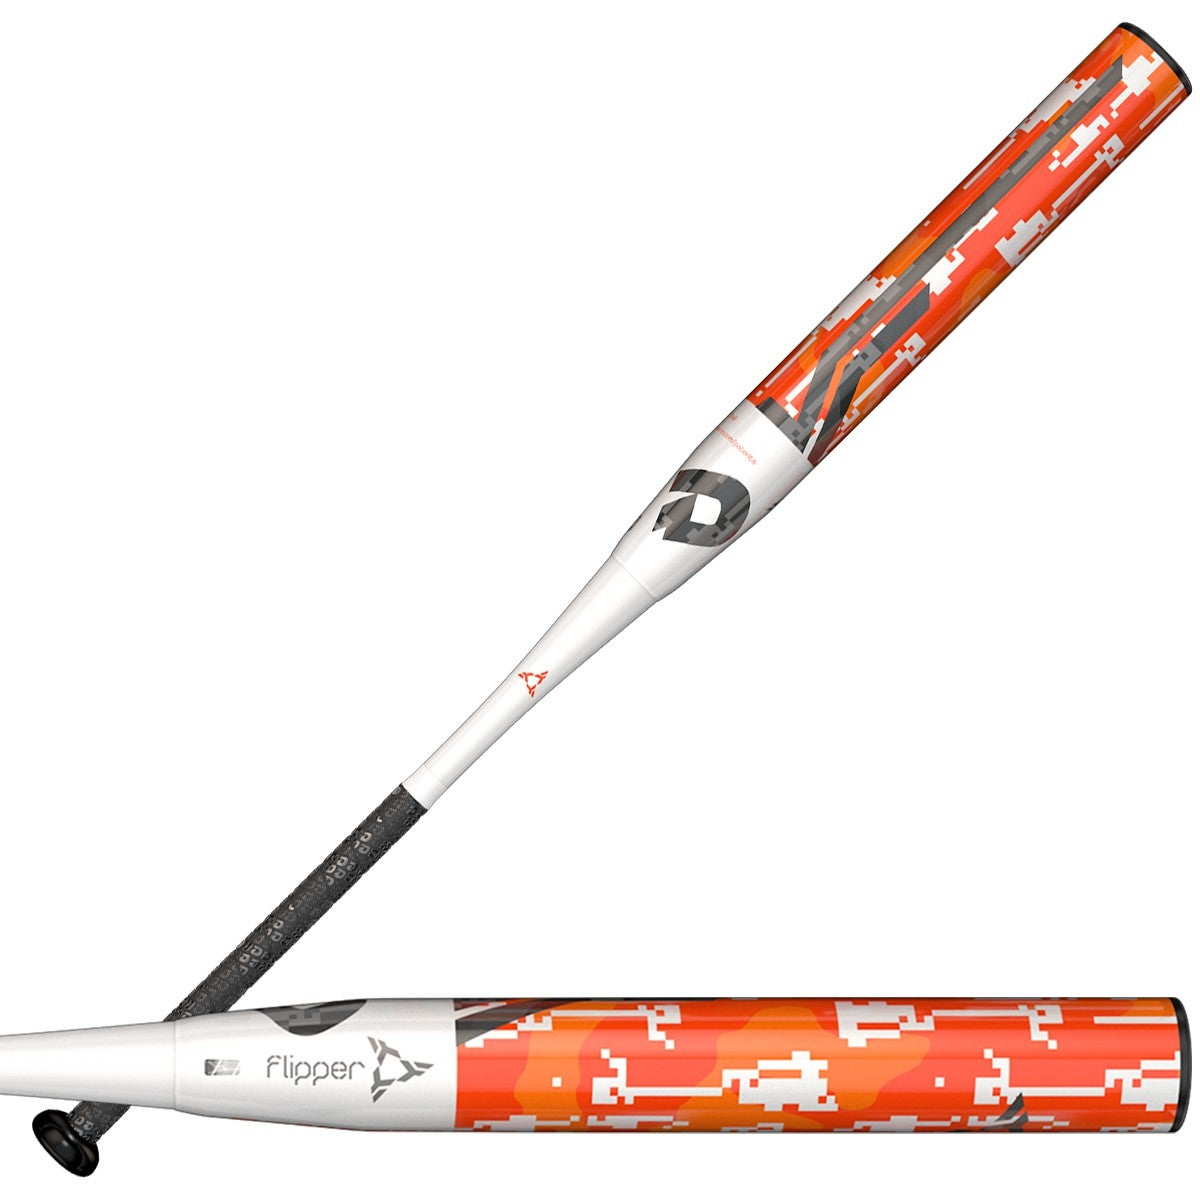 How To Choose a Slowpitch Bat | DeMarini